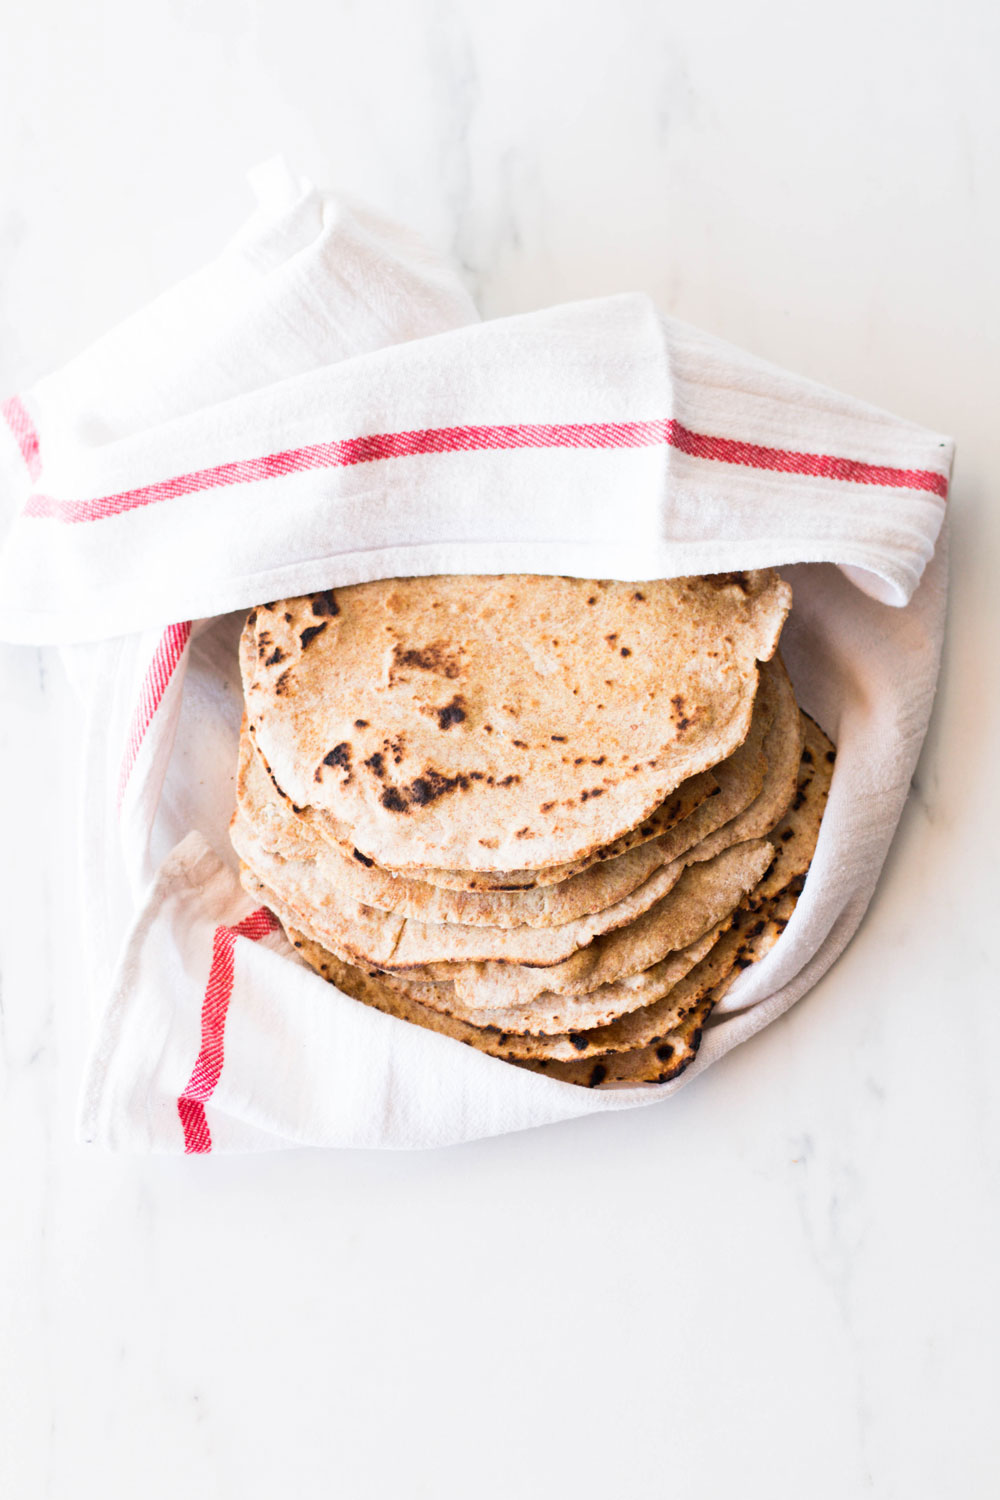 These easy 6-ingredient spelt tortillas are perfect for taco nights, you can make nachos with them and, since spelt is a non-GMO wheat variety, they're also great to test if you're intolerant to gluten or if you're just sensitive to genetically modified wheat (the kind of wheat that's commonly used in processed foods). https://www.spotebi.com/recipes/easy-6-ingredient-spelt-tortillas/